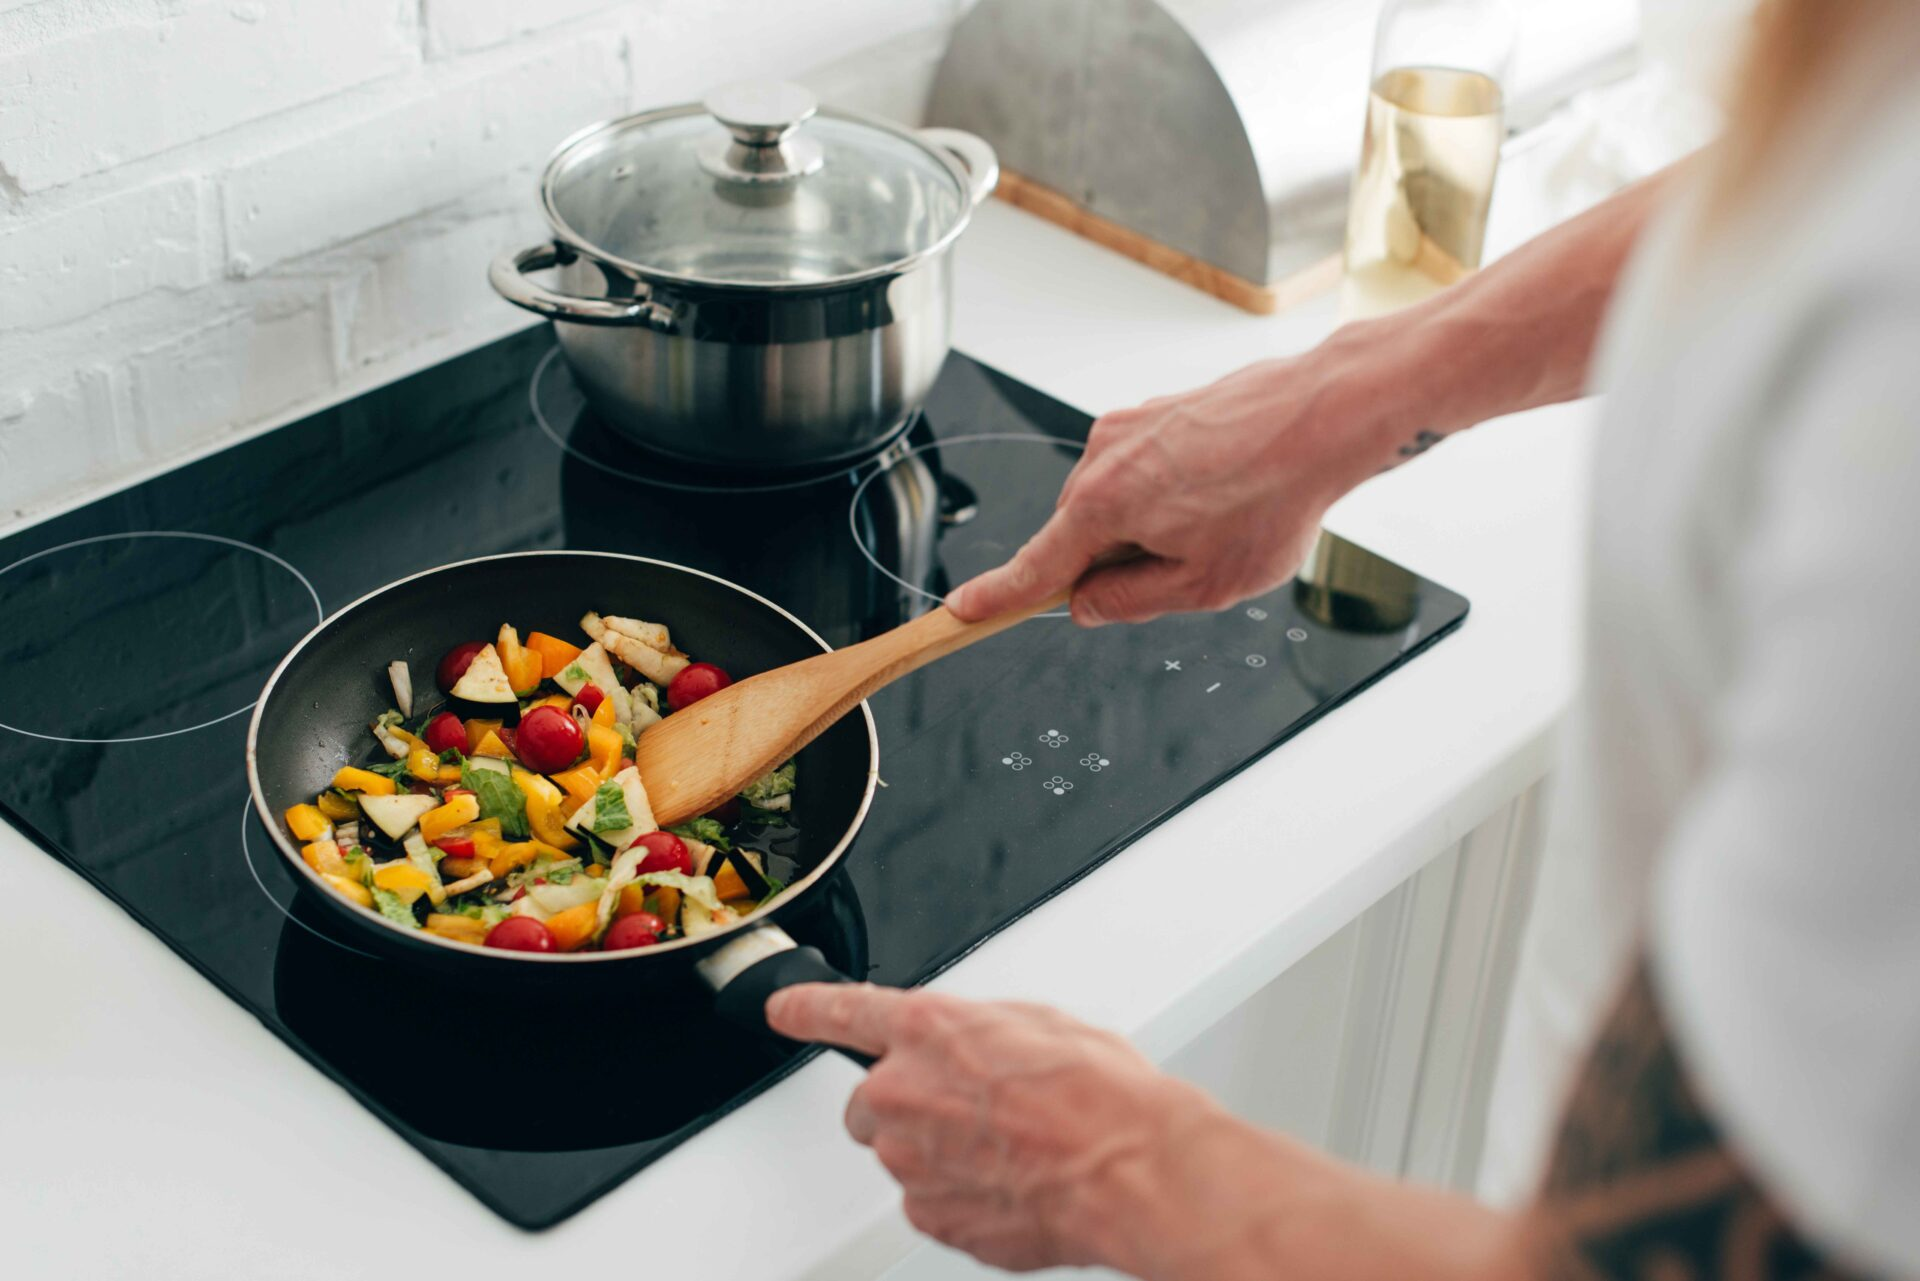 Man cooking vegetables in frying pan on electric